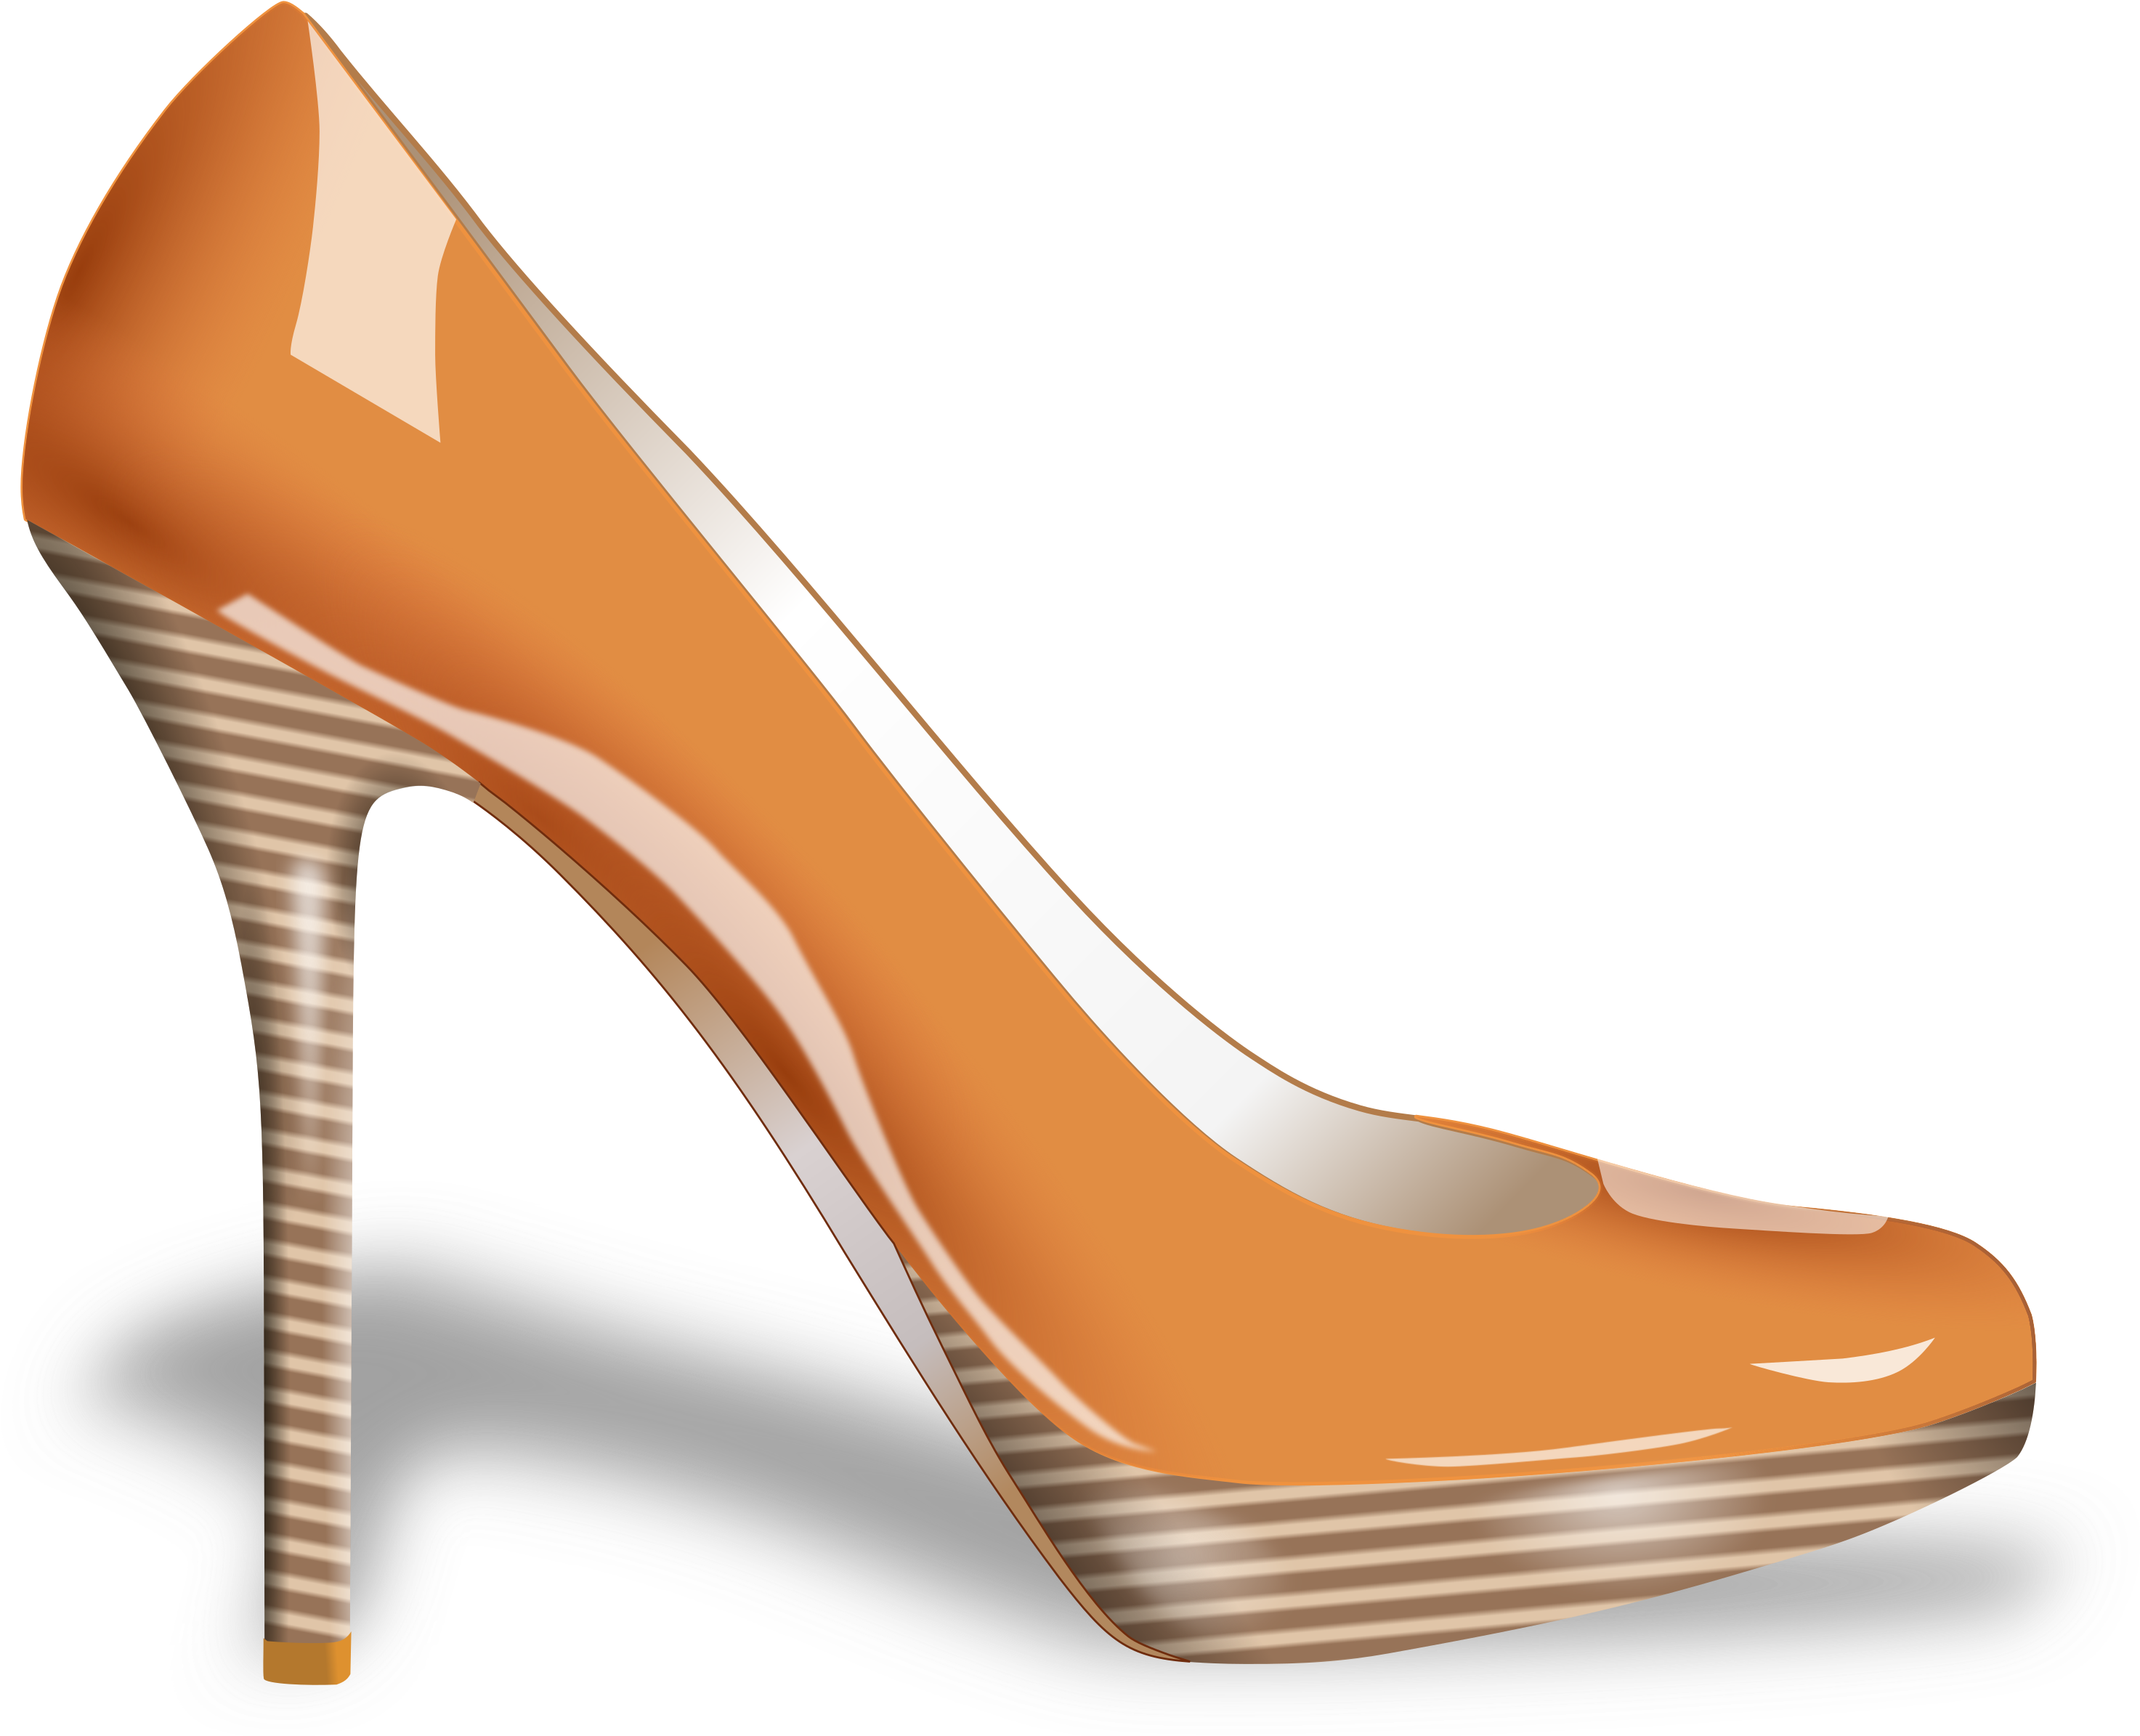 Download Fashion Clipart Fashion Shoe Cartoon High Heels Full Size Png Image Pngkit